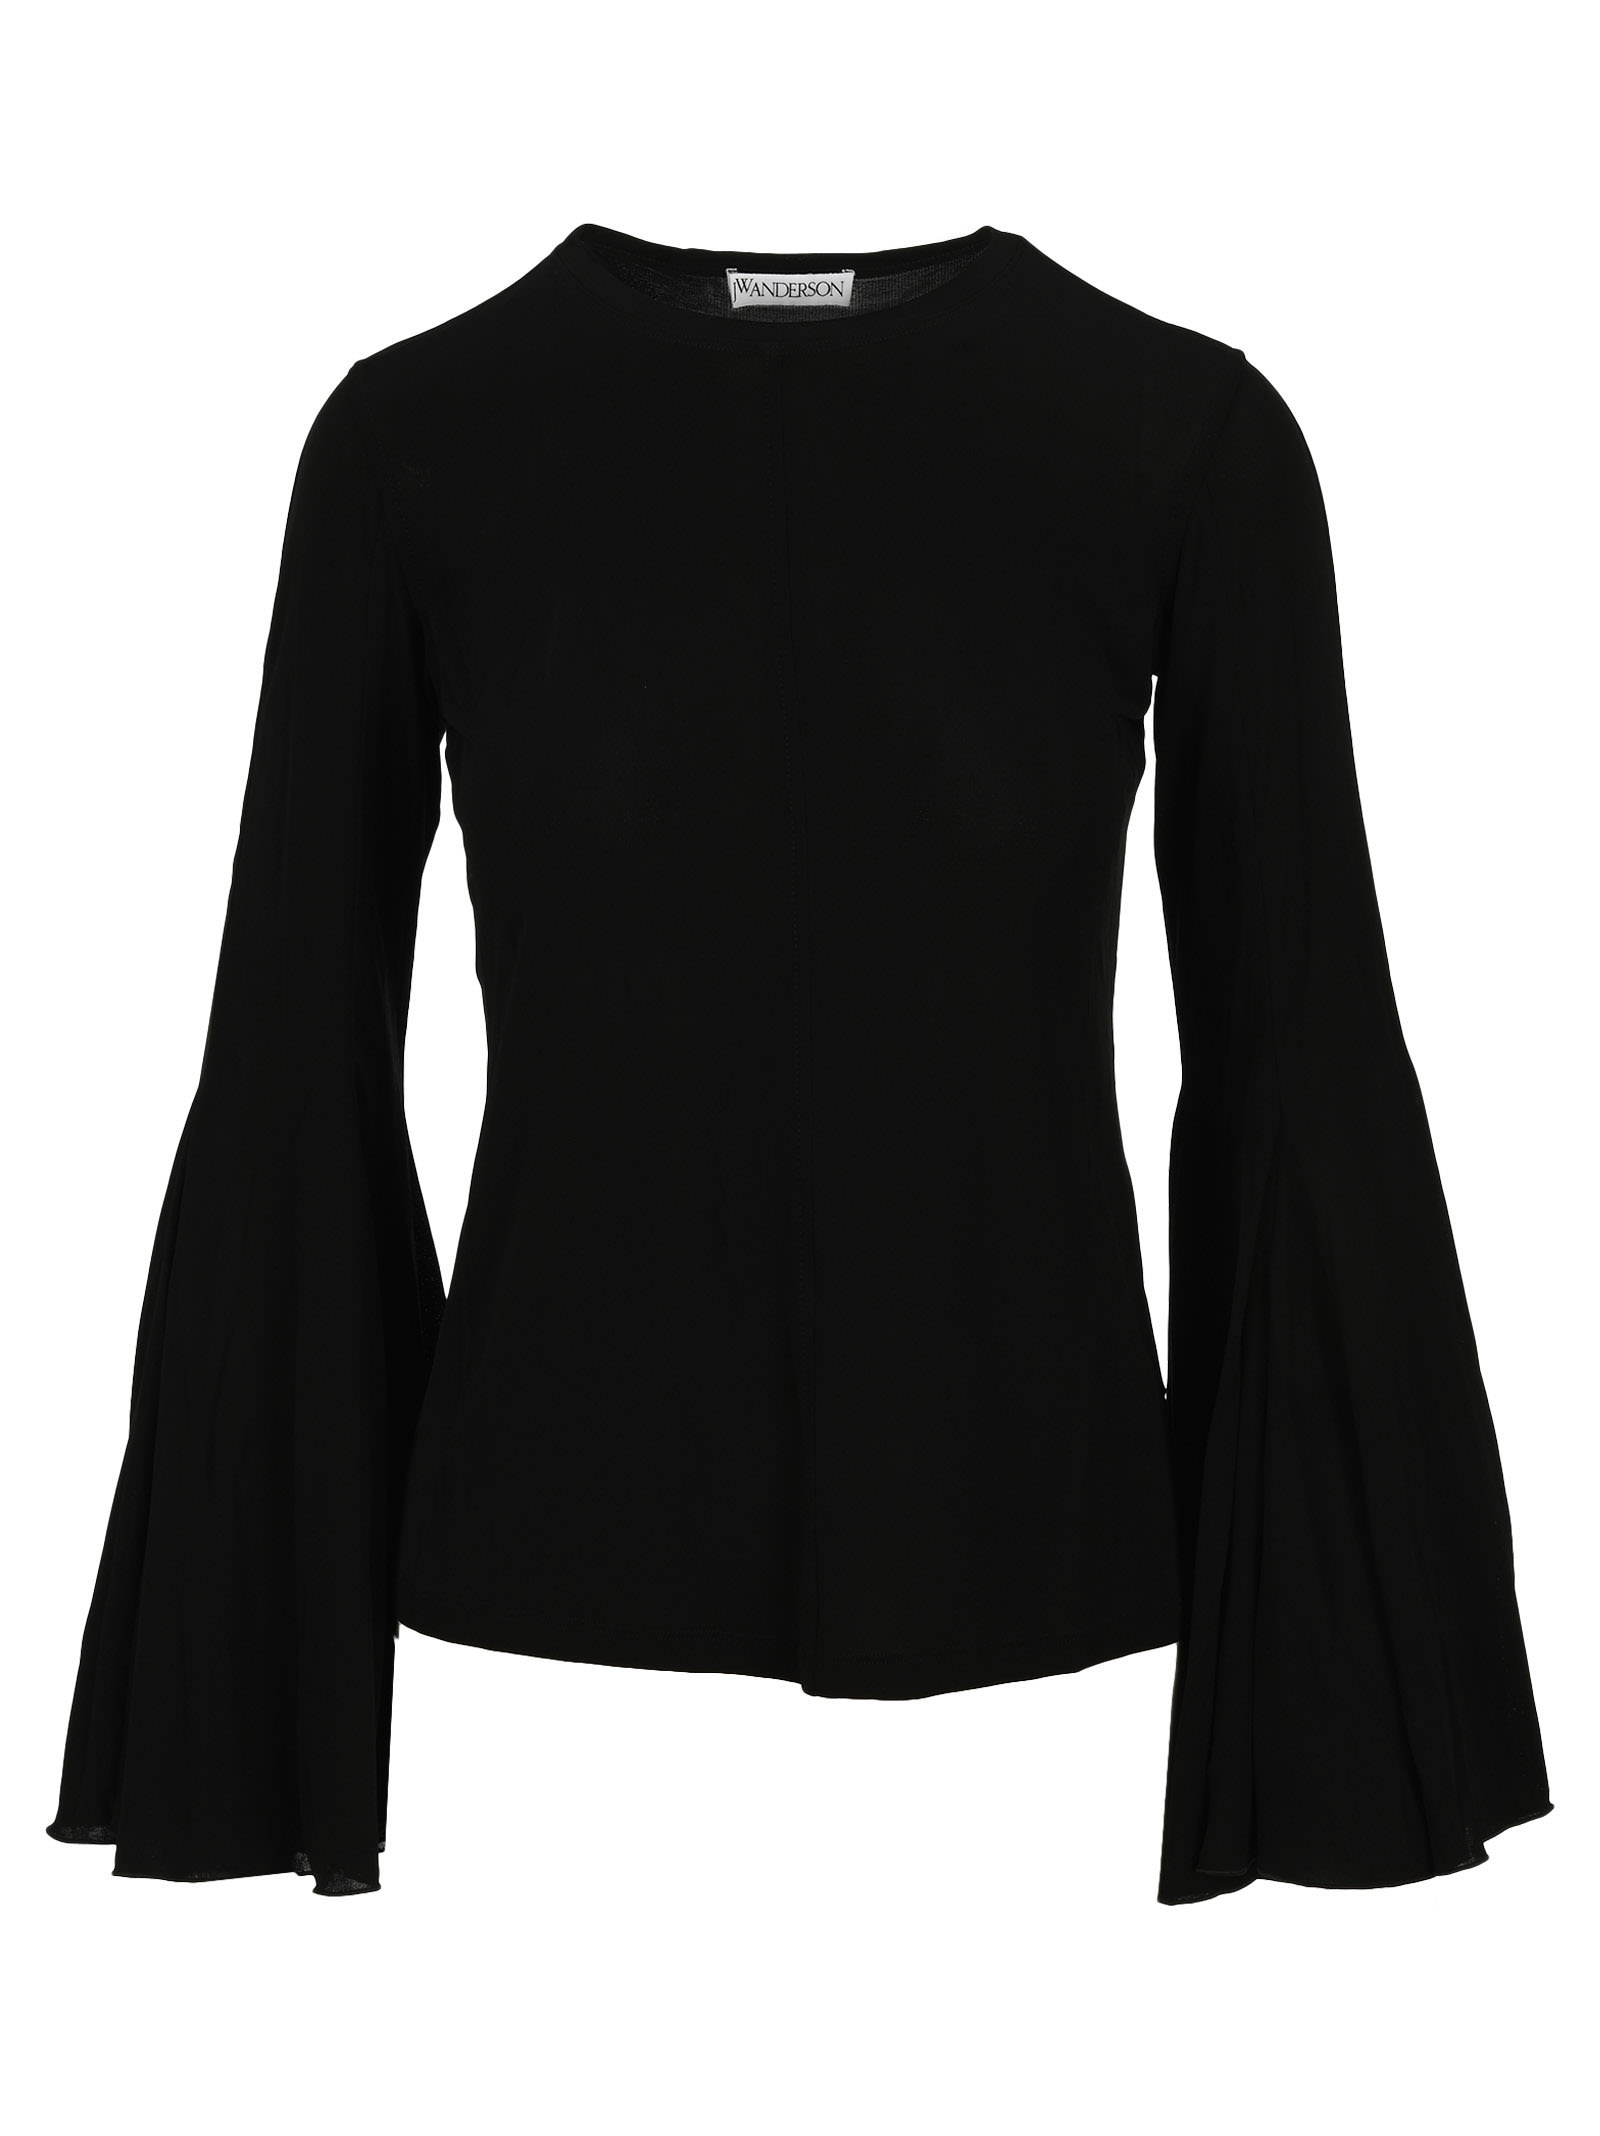 JW ANDERSON JW ANDERSON BELL SLEEVE BLOUSE